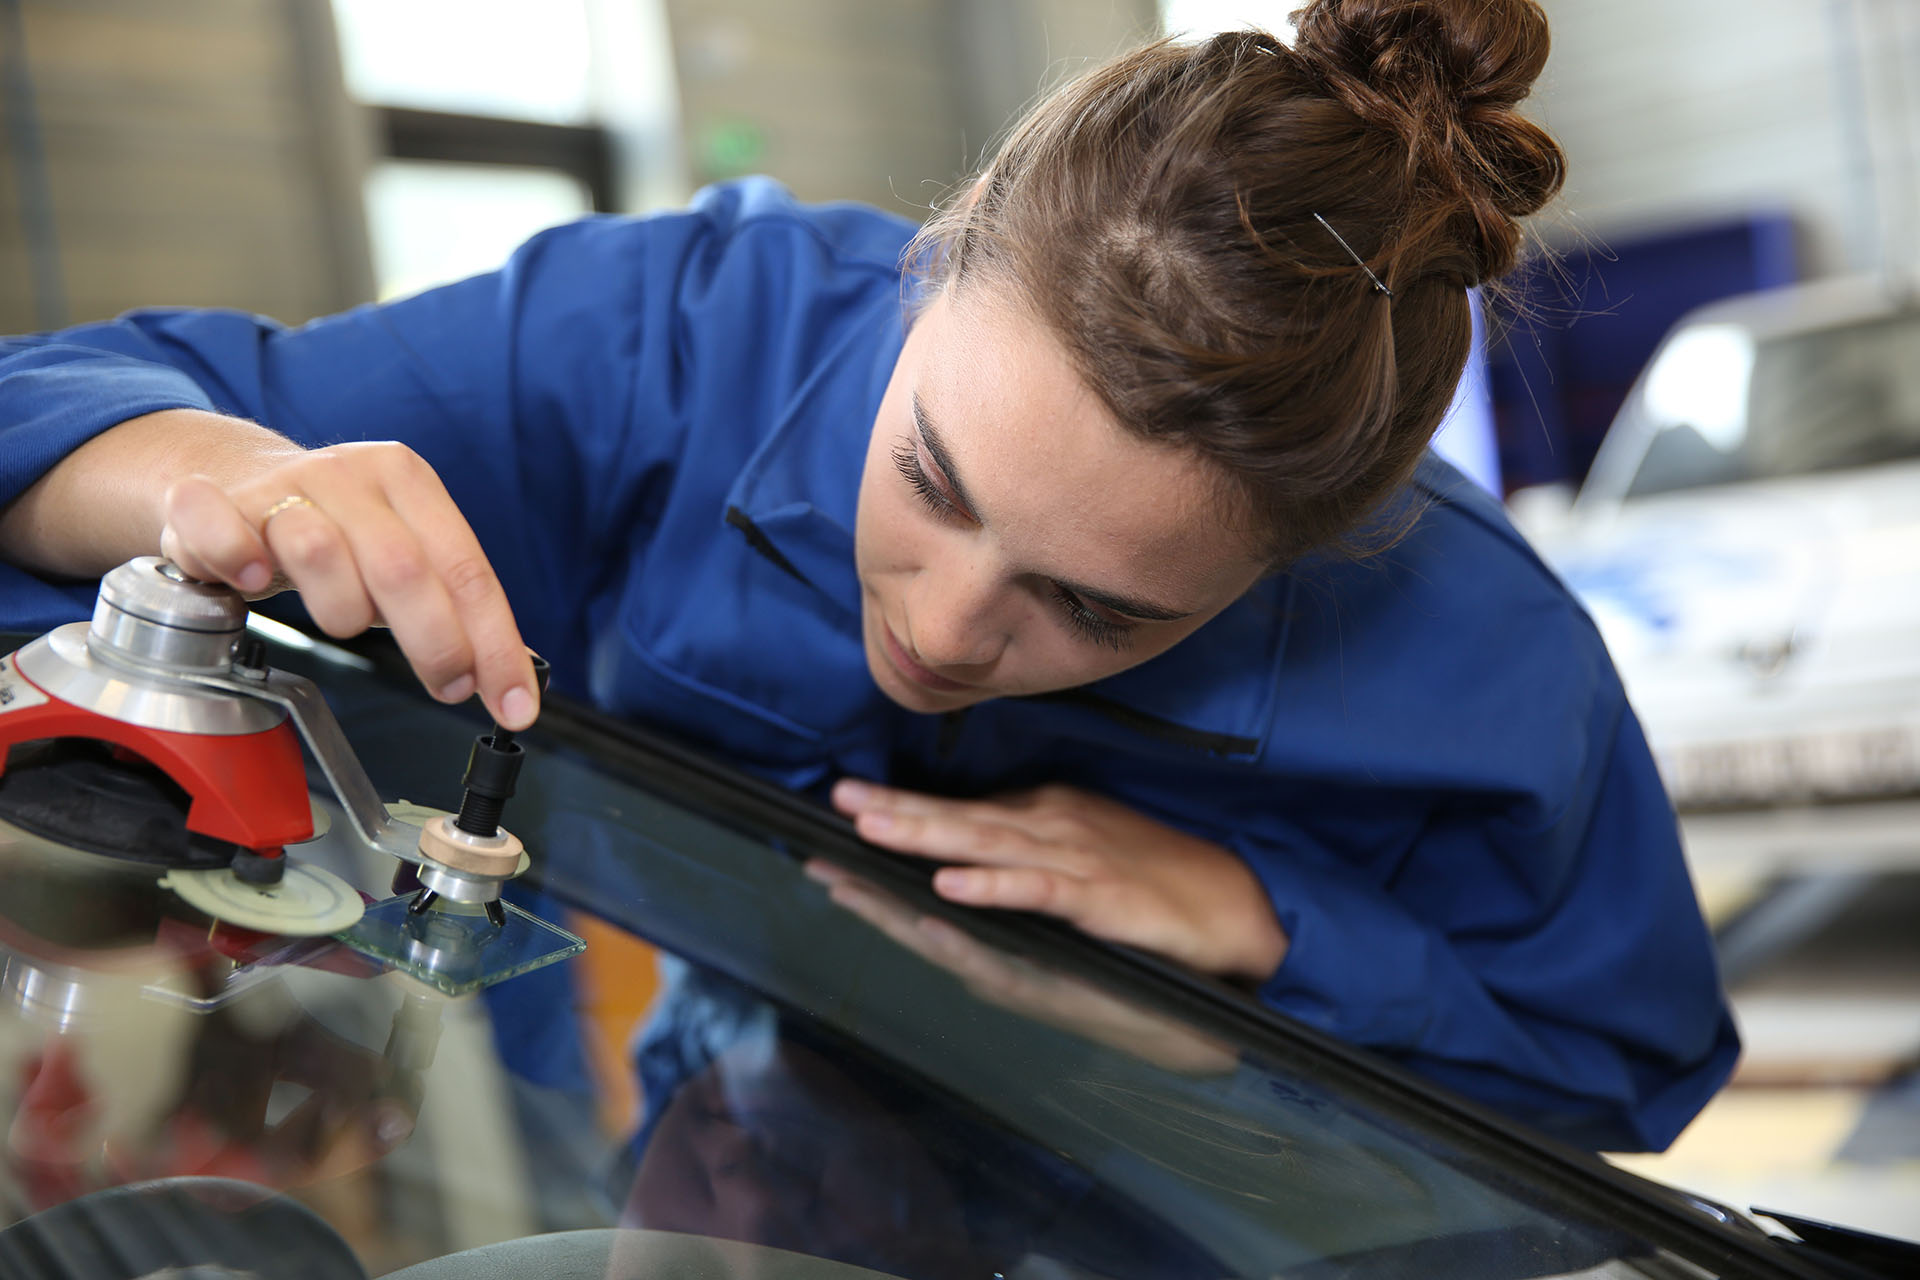 Windshield repair services in Nanaimo BC